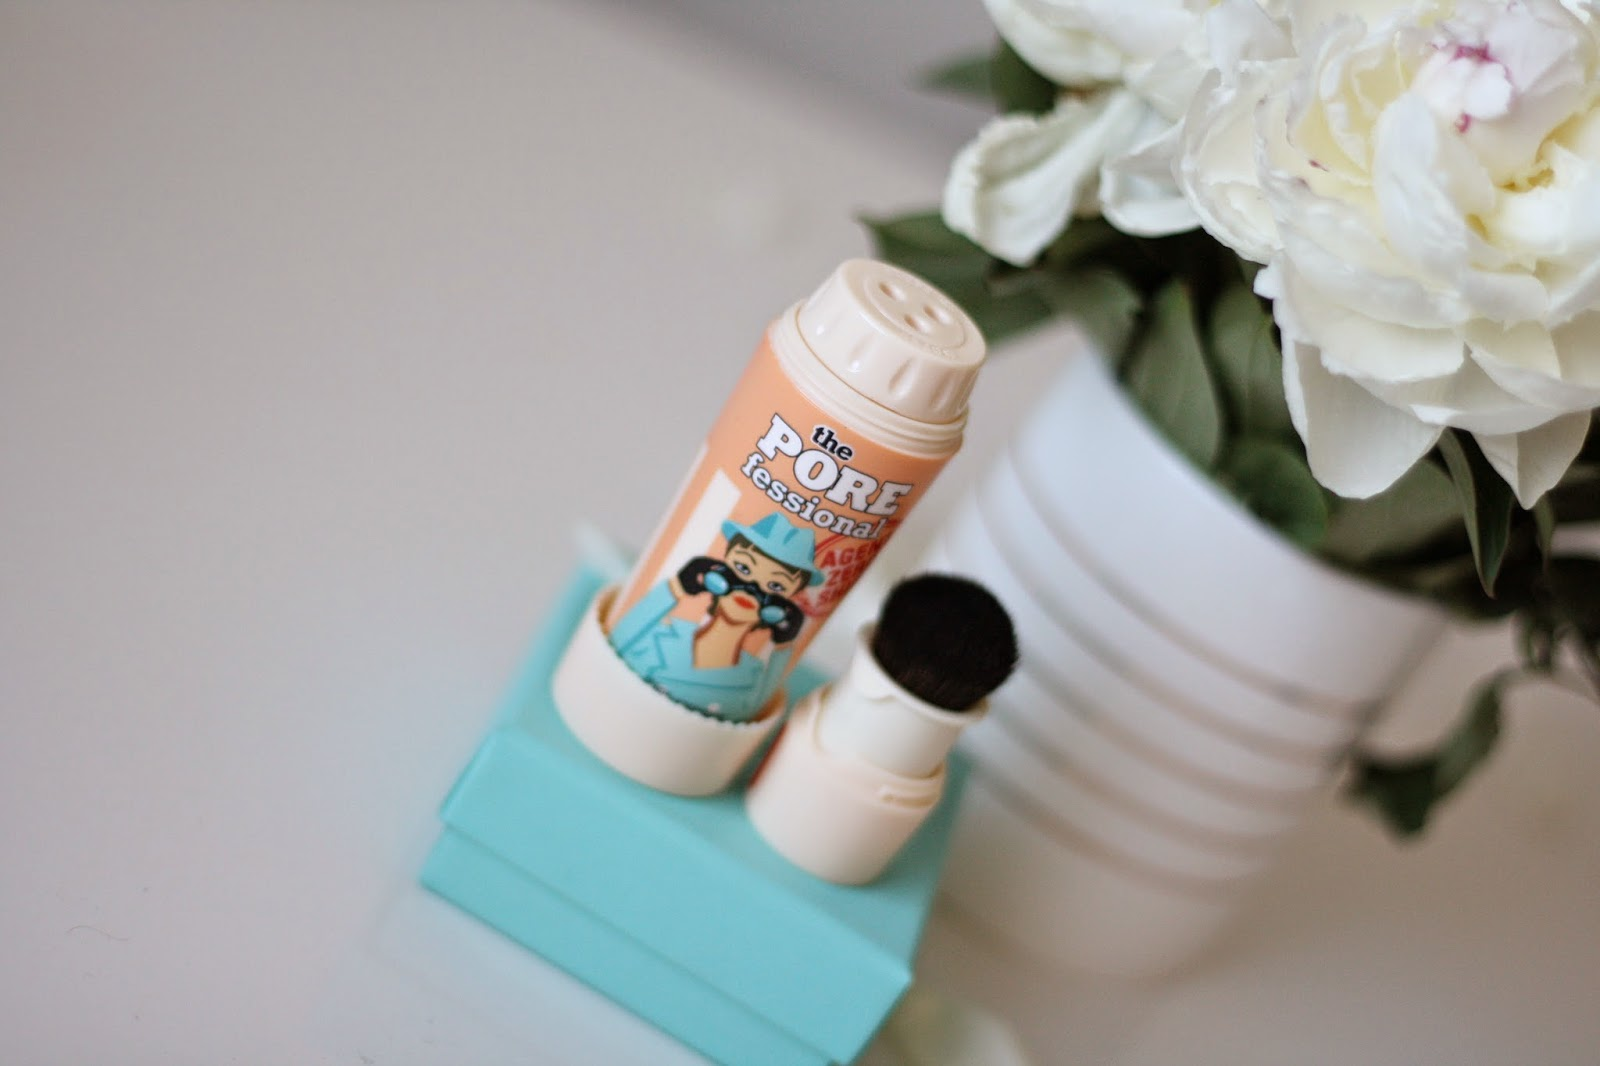 Benefit, Benefit Cosmetics, The Porefessional